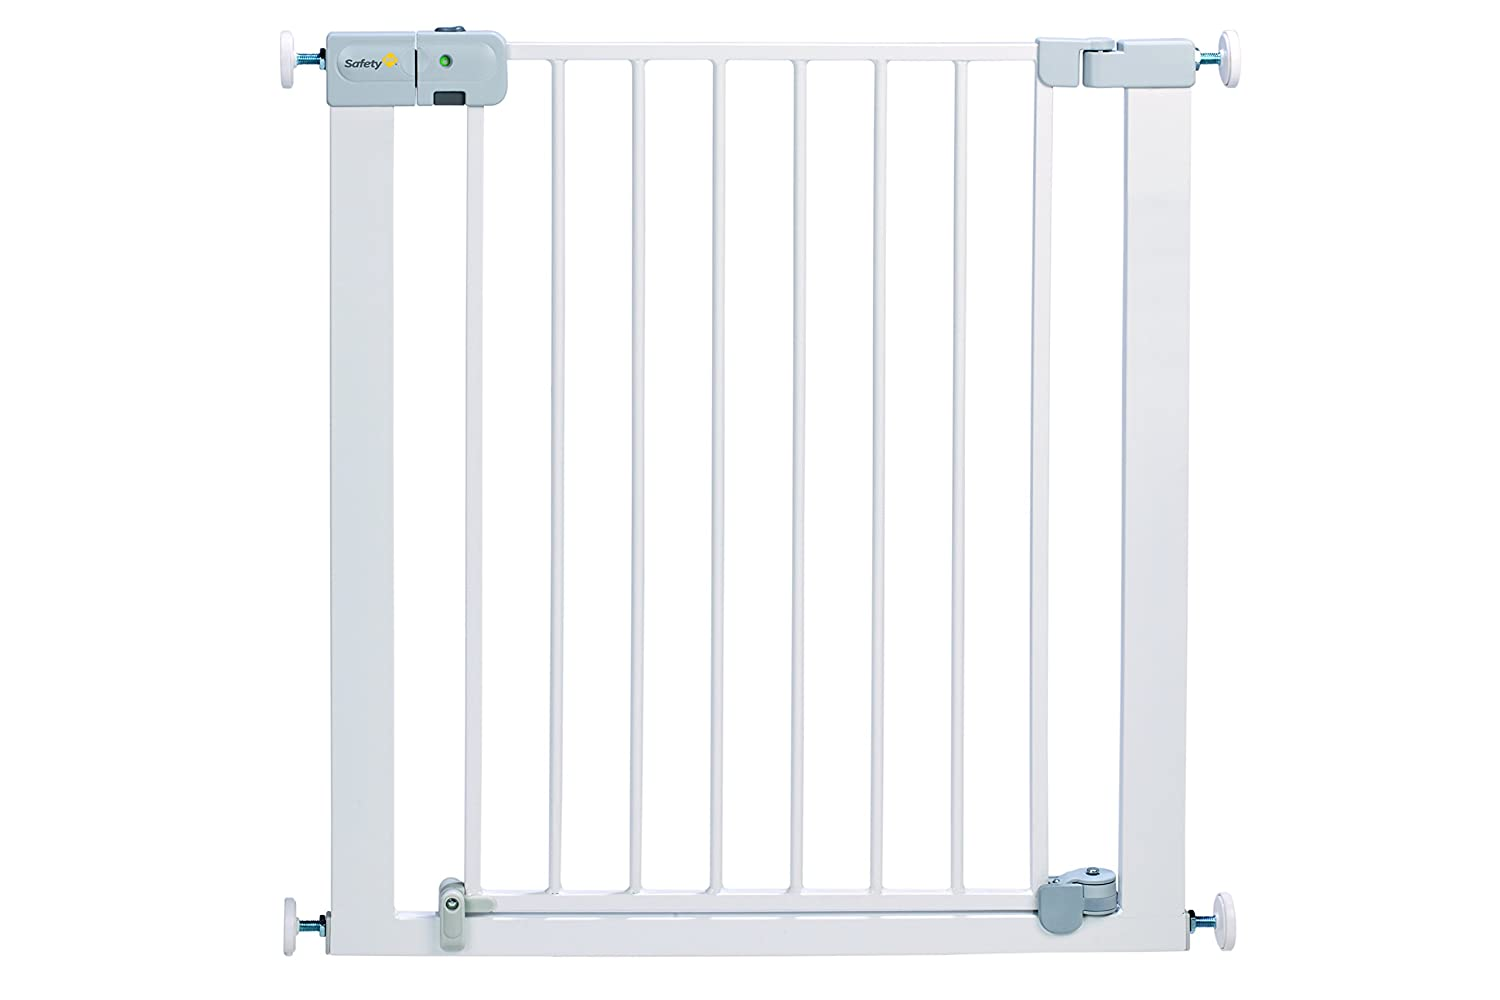 Safety 1st Securtech Auto Close Metal Gate, White 24484311